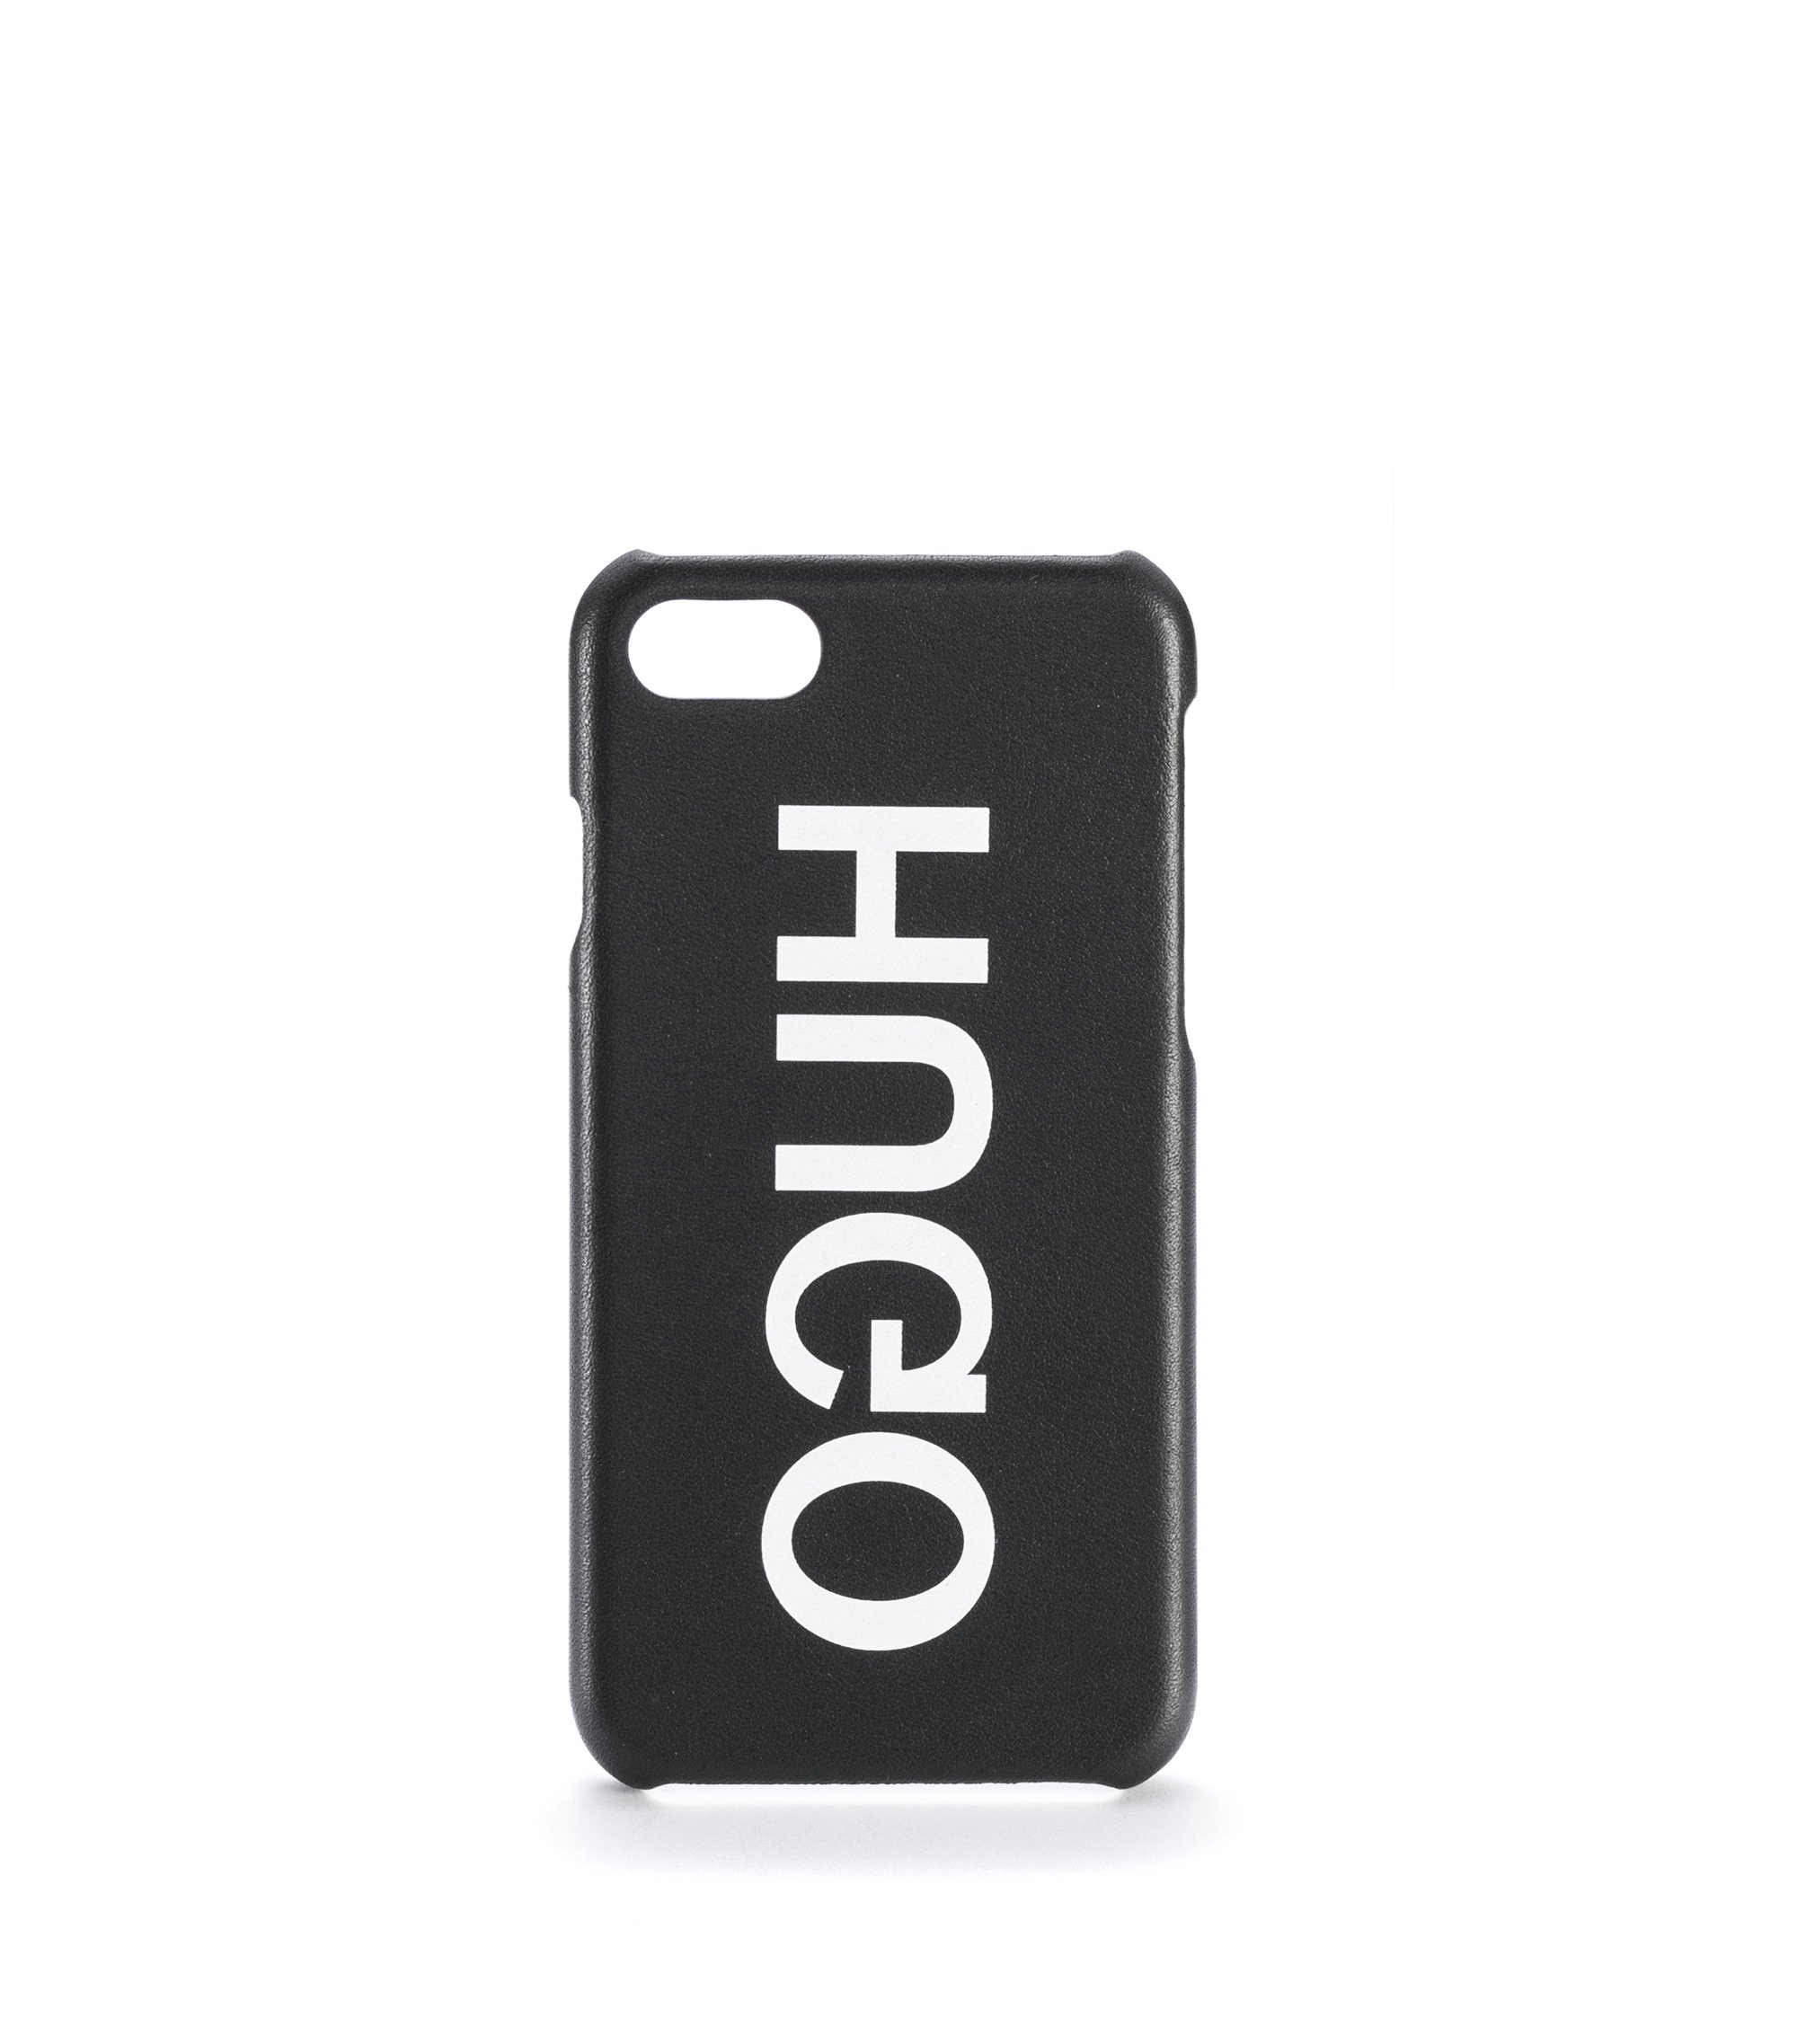 Funda de iPhone 7 con logo invertido, Negro